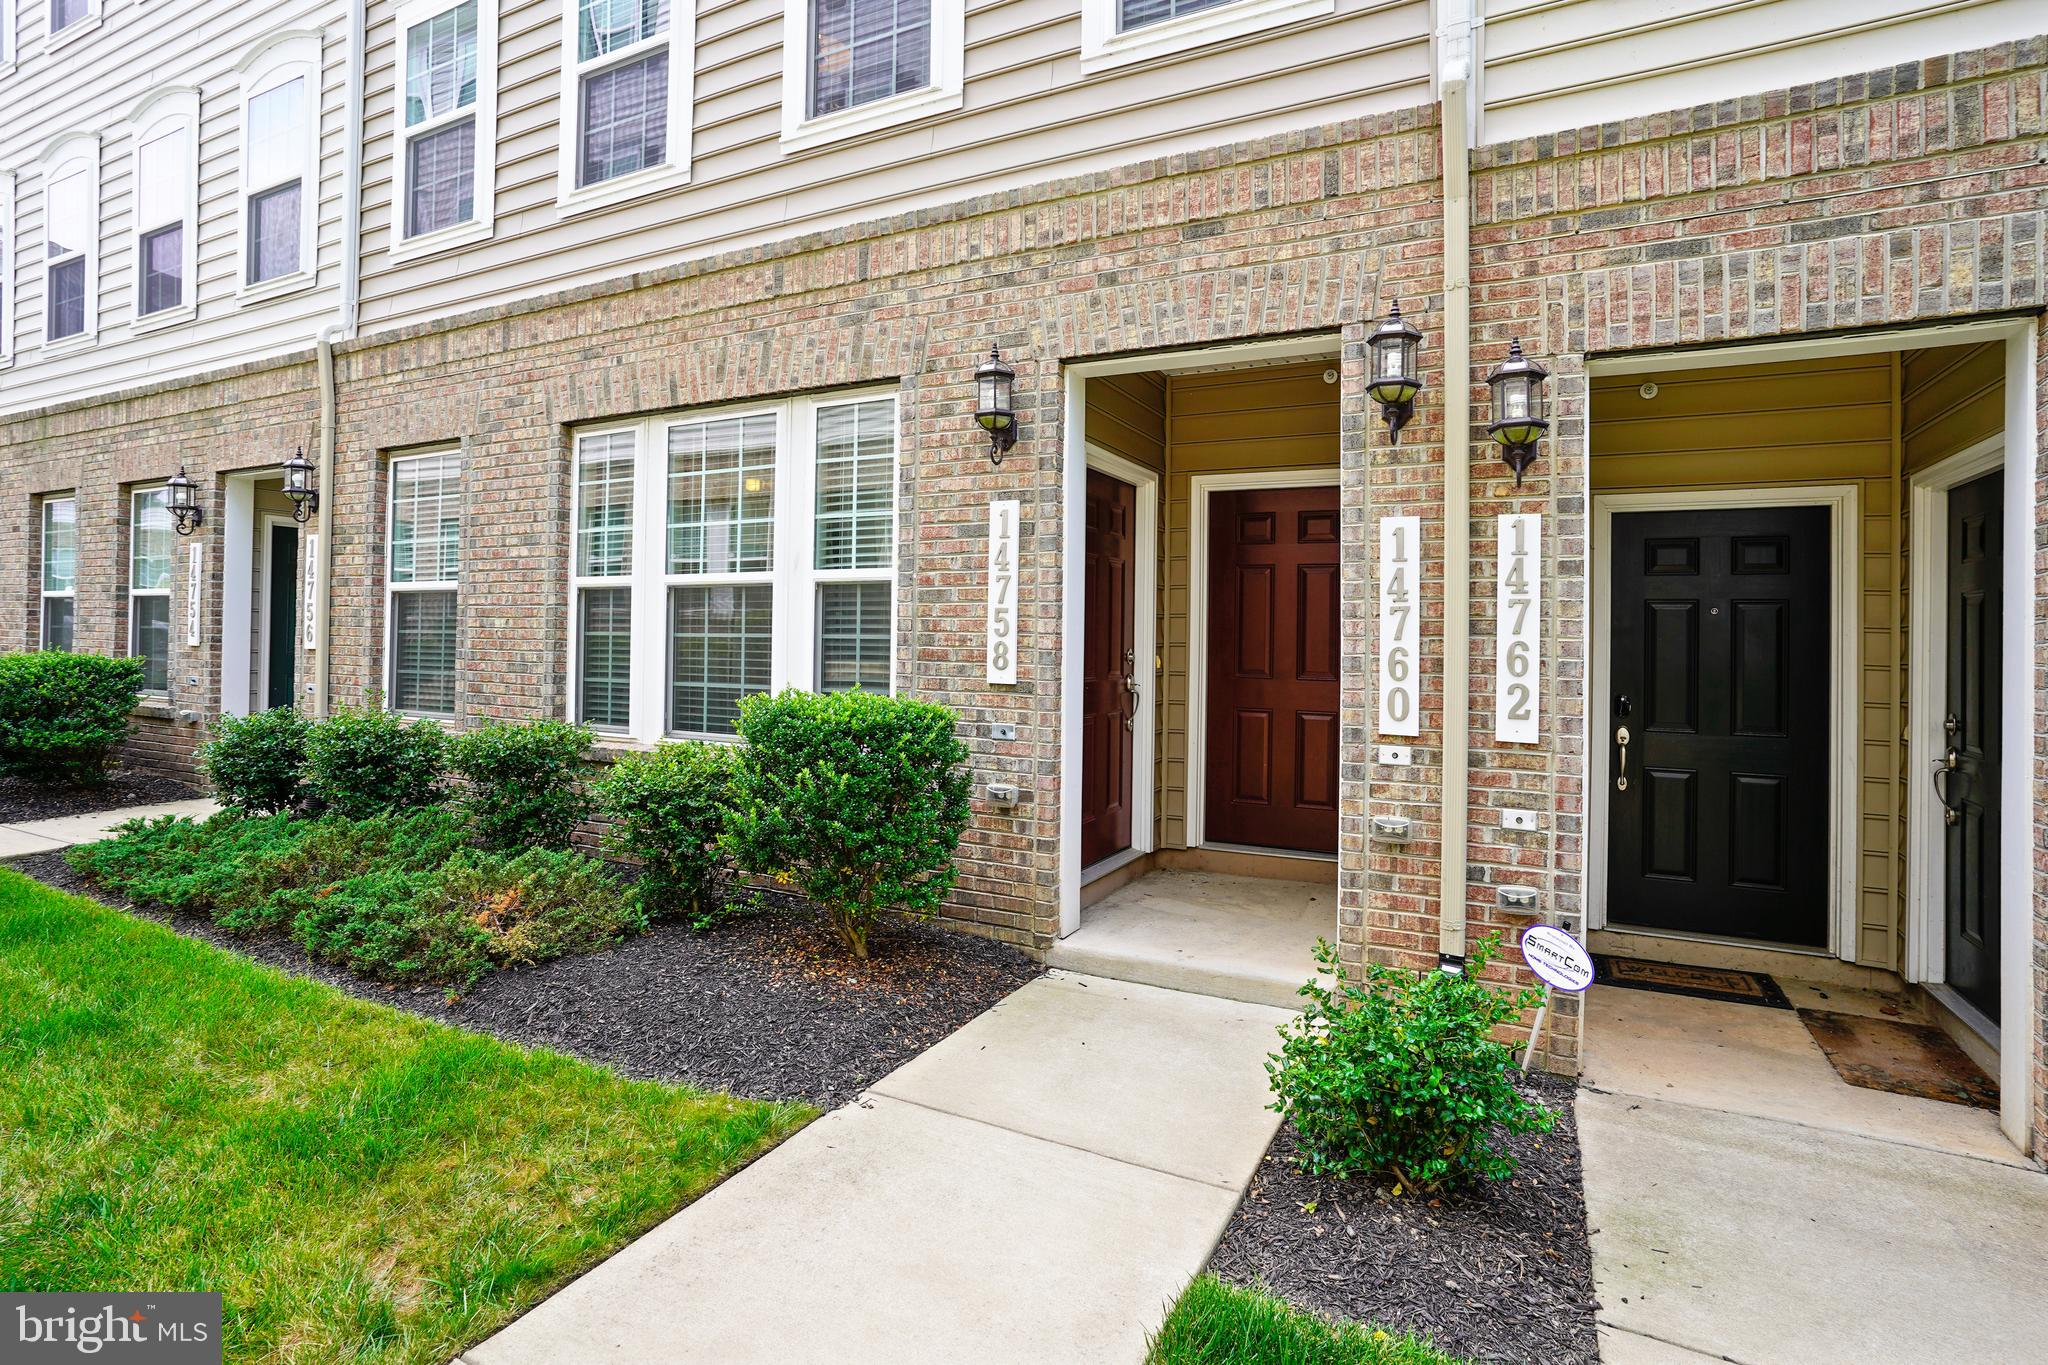 Location, price AND convenience all rolled into one!  This beautiful and spacious townhome condo in